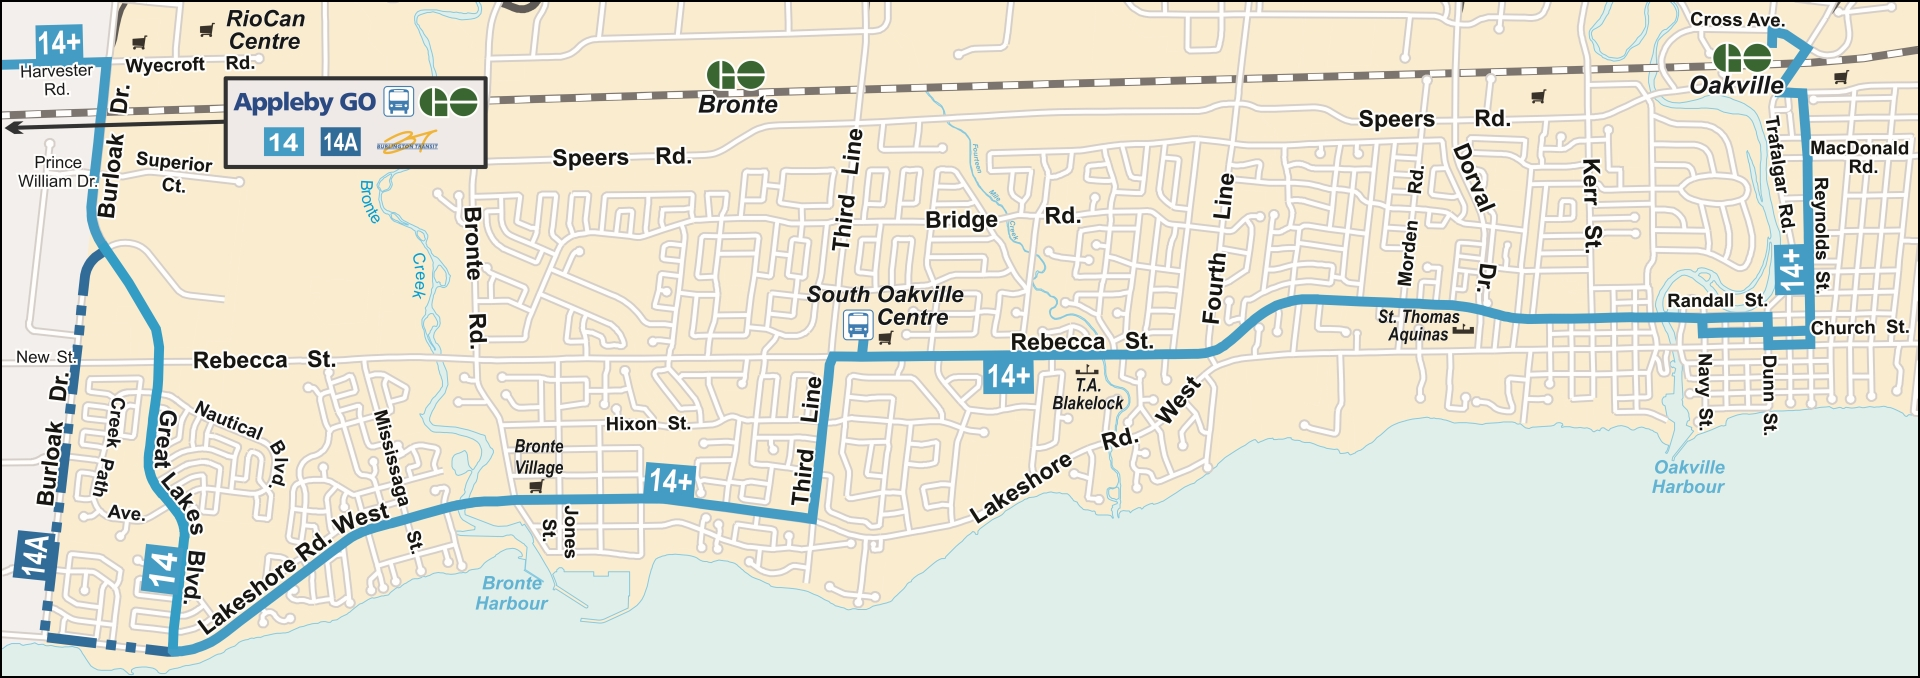 Route 14 and 14A route map